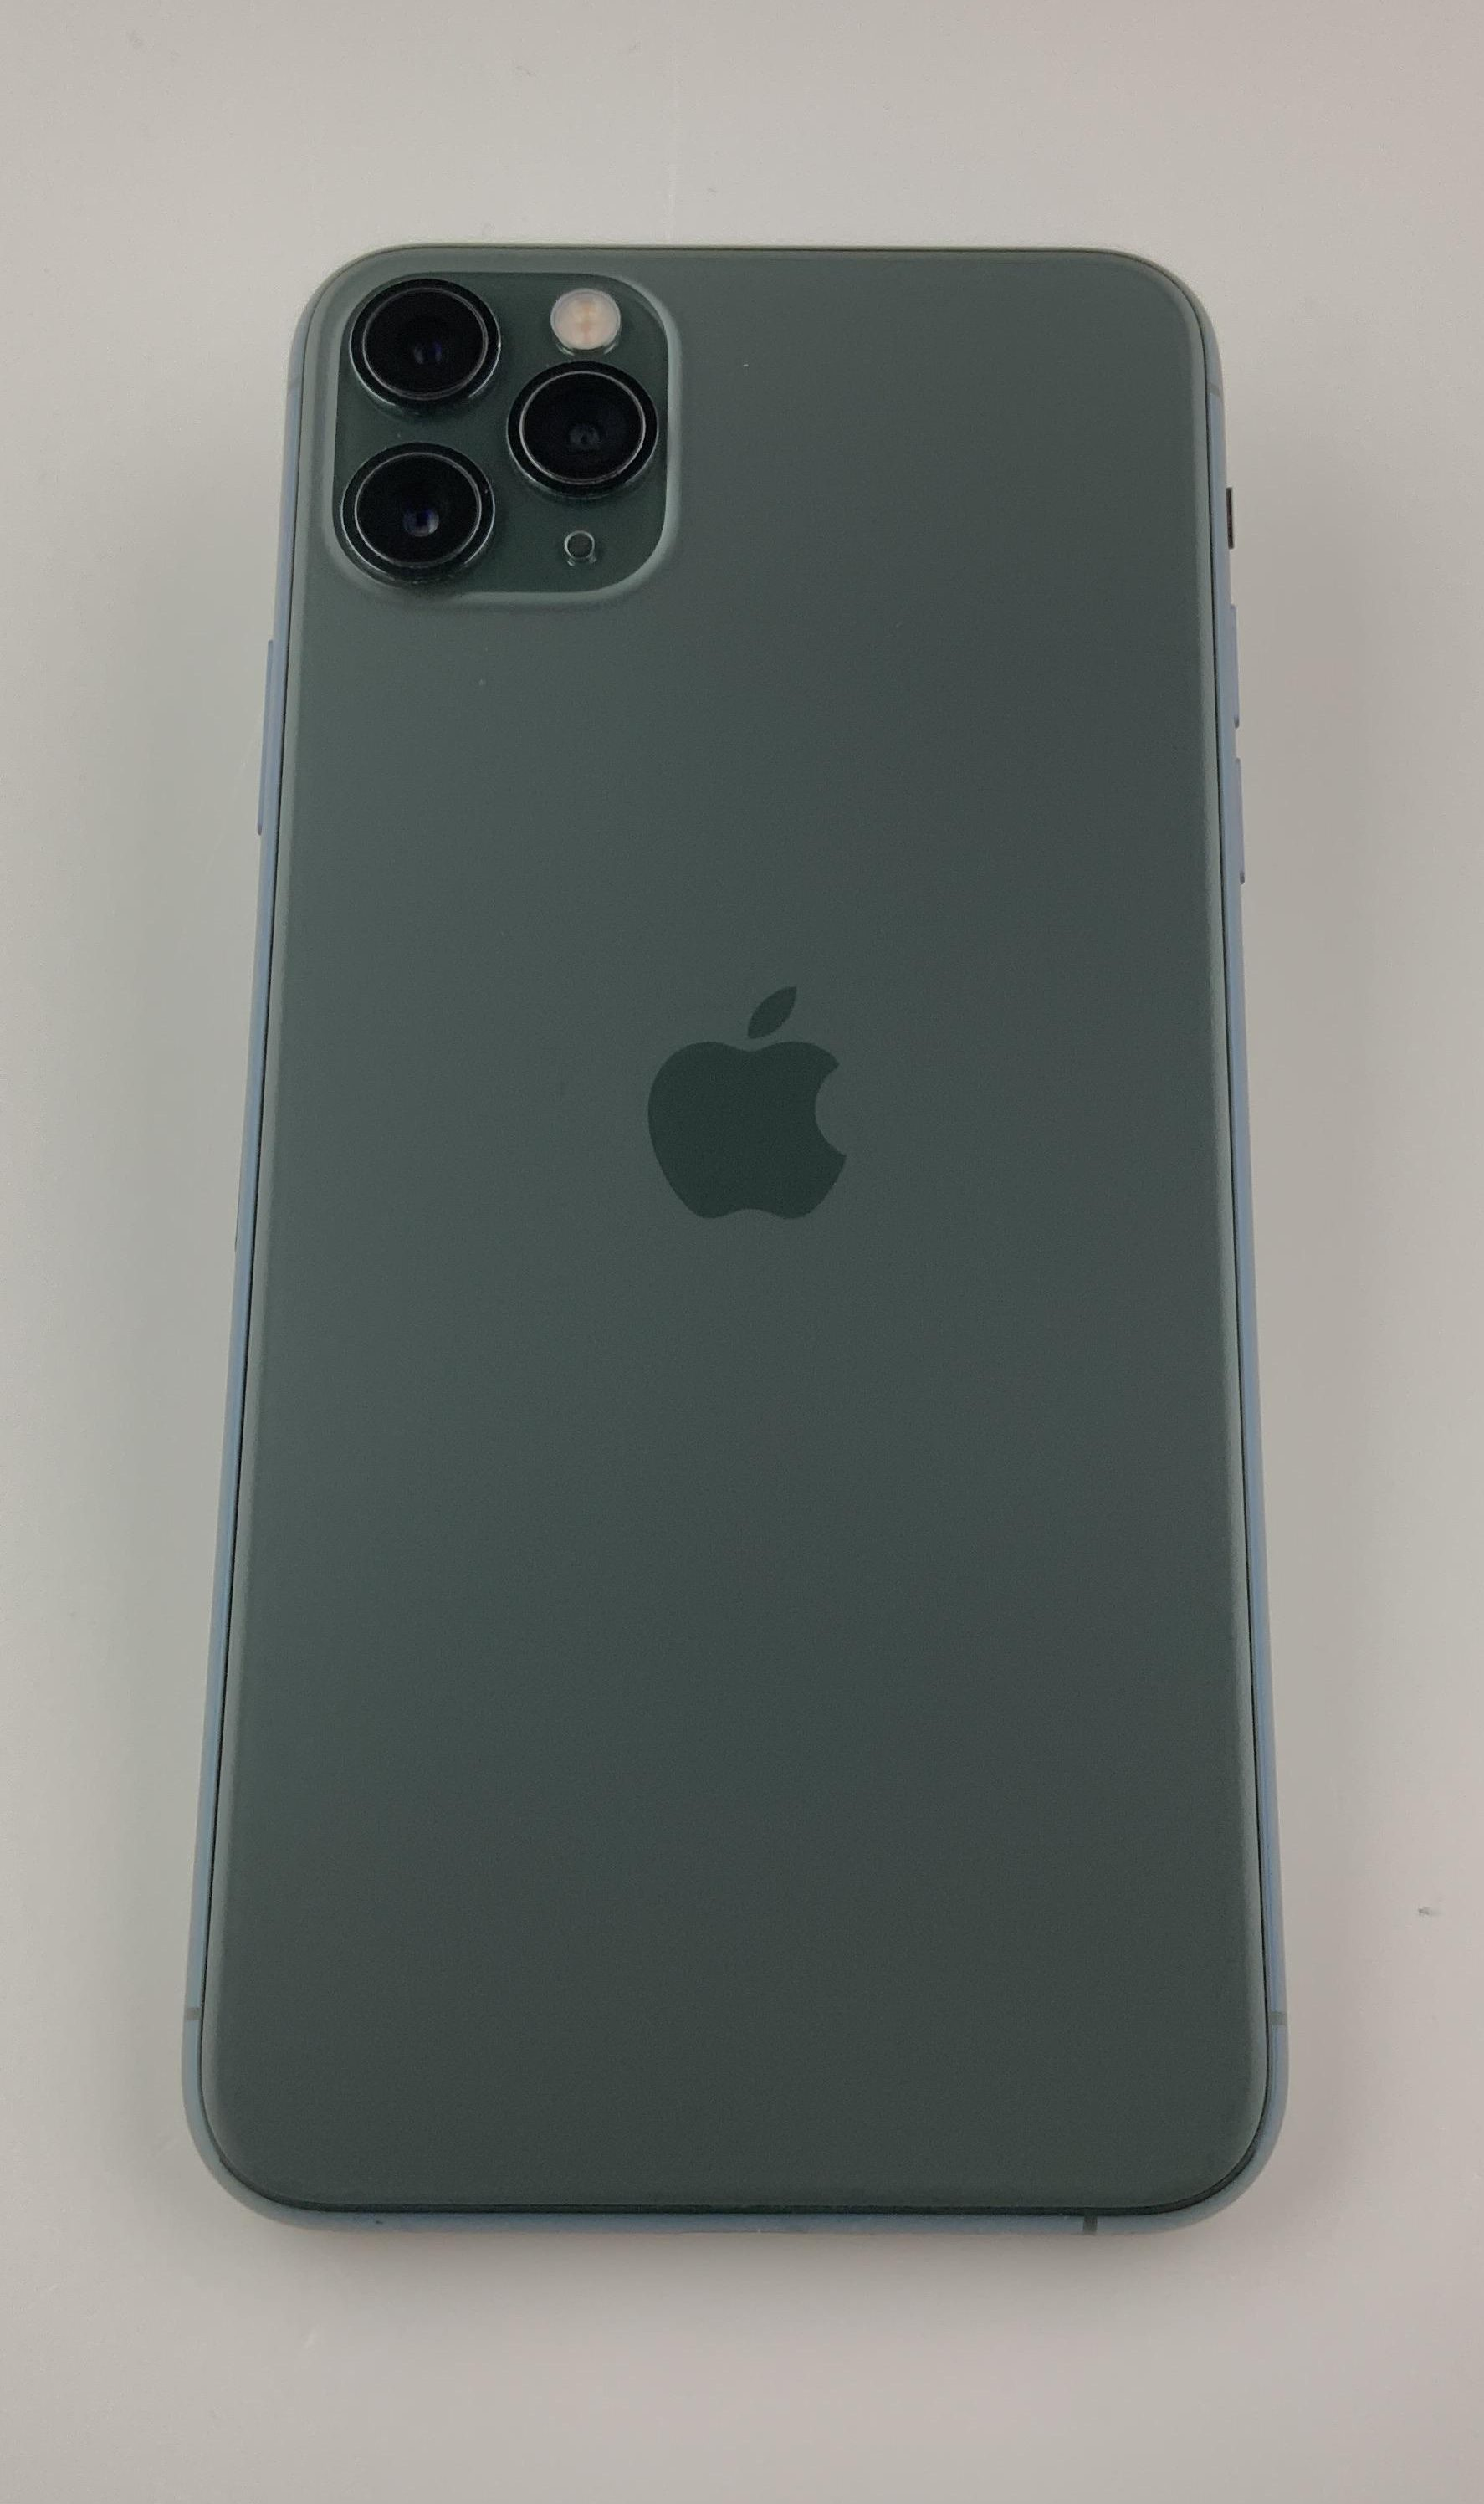 iPhone 11 Pro Max 256GB, 256GB, Midnight Green, immagine 2